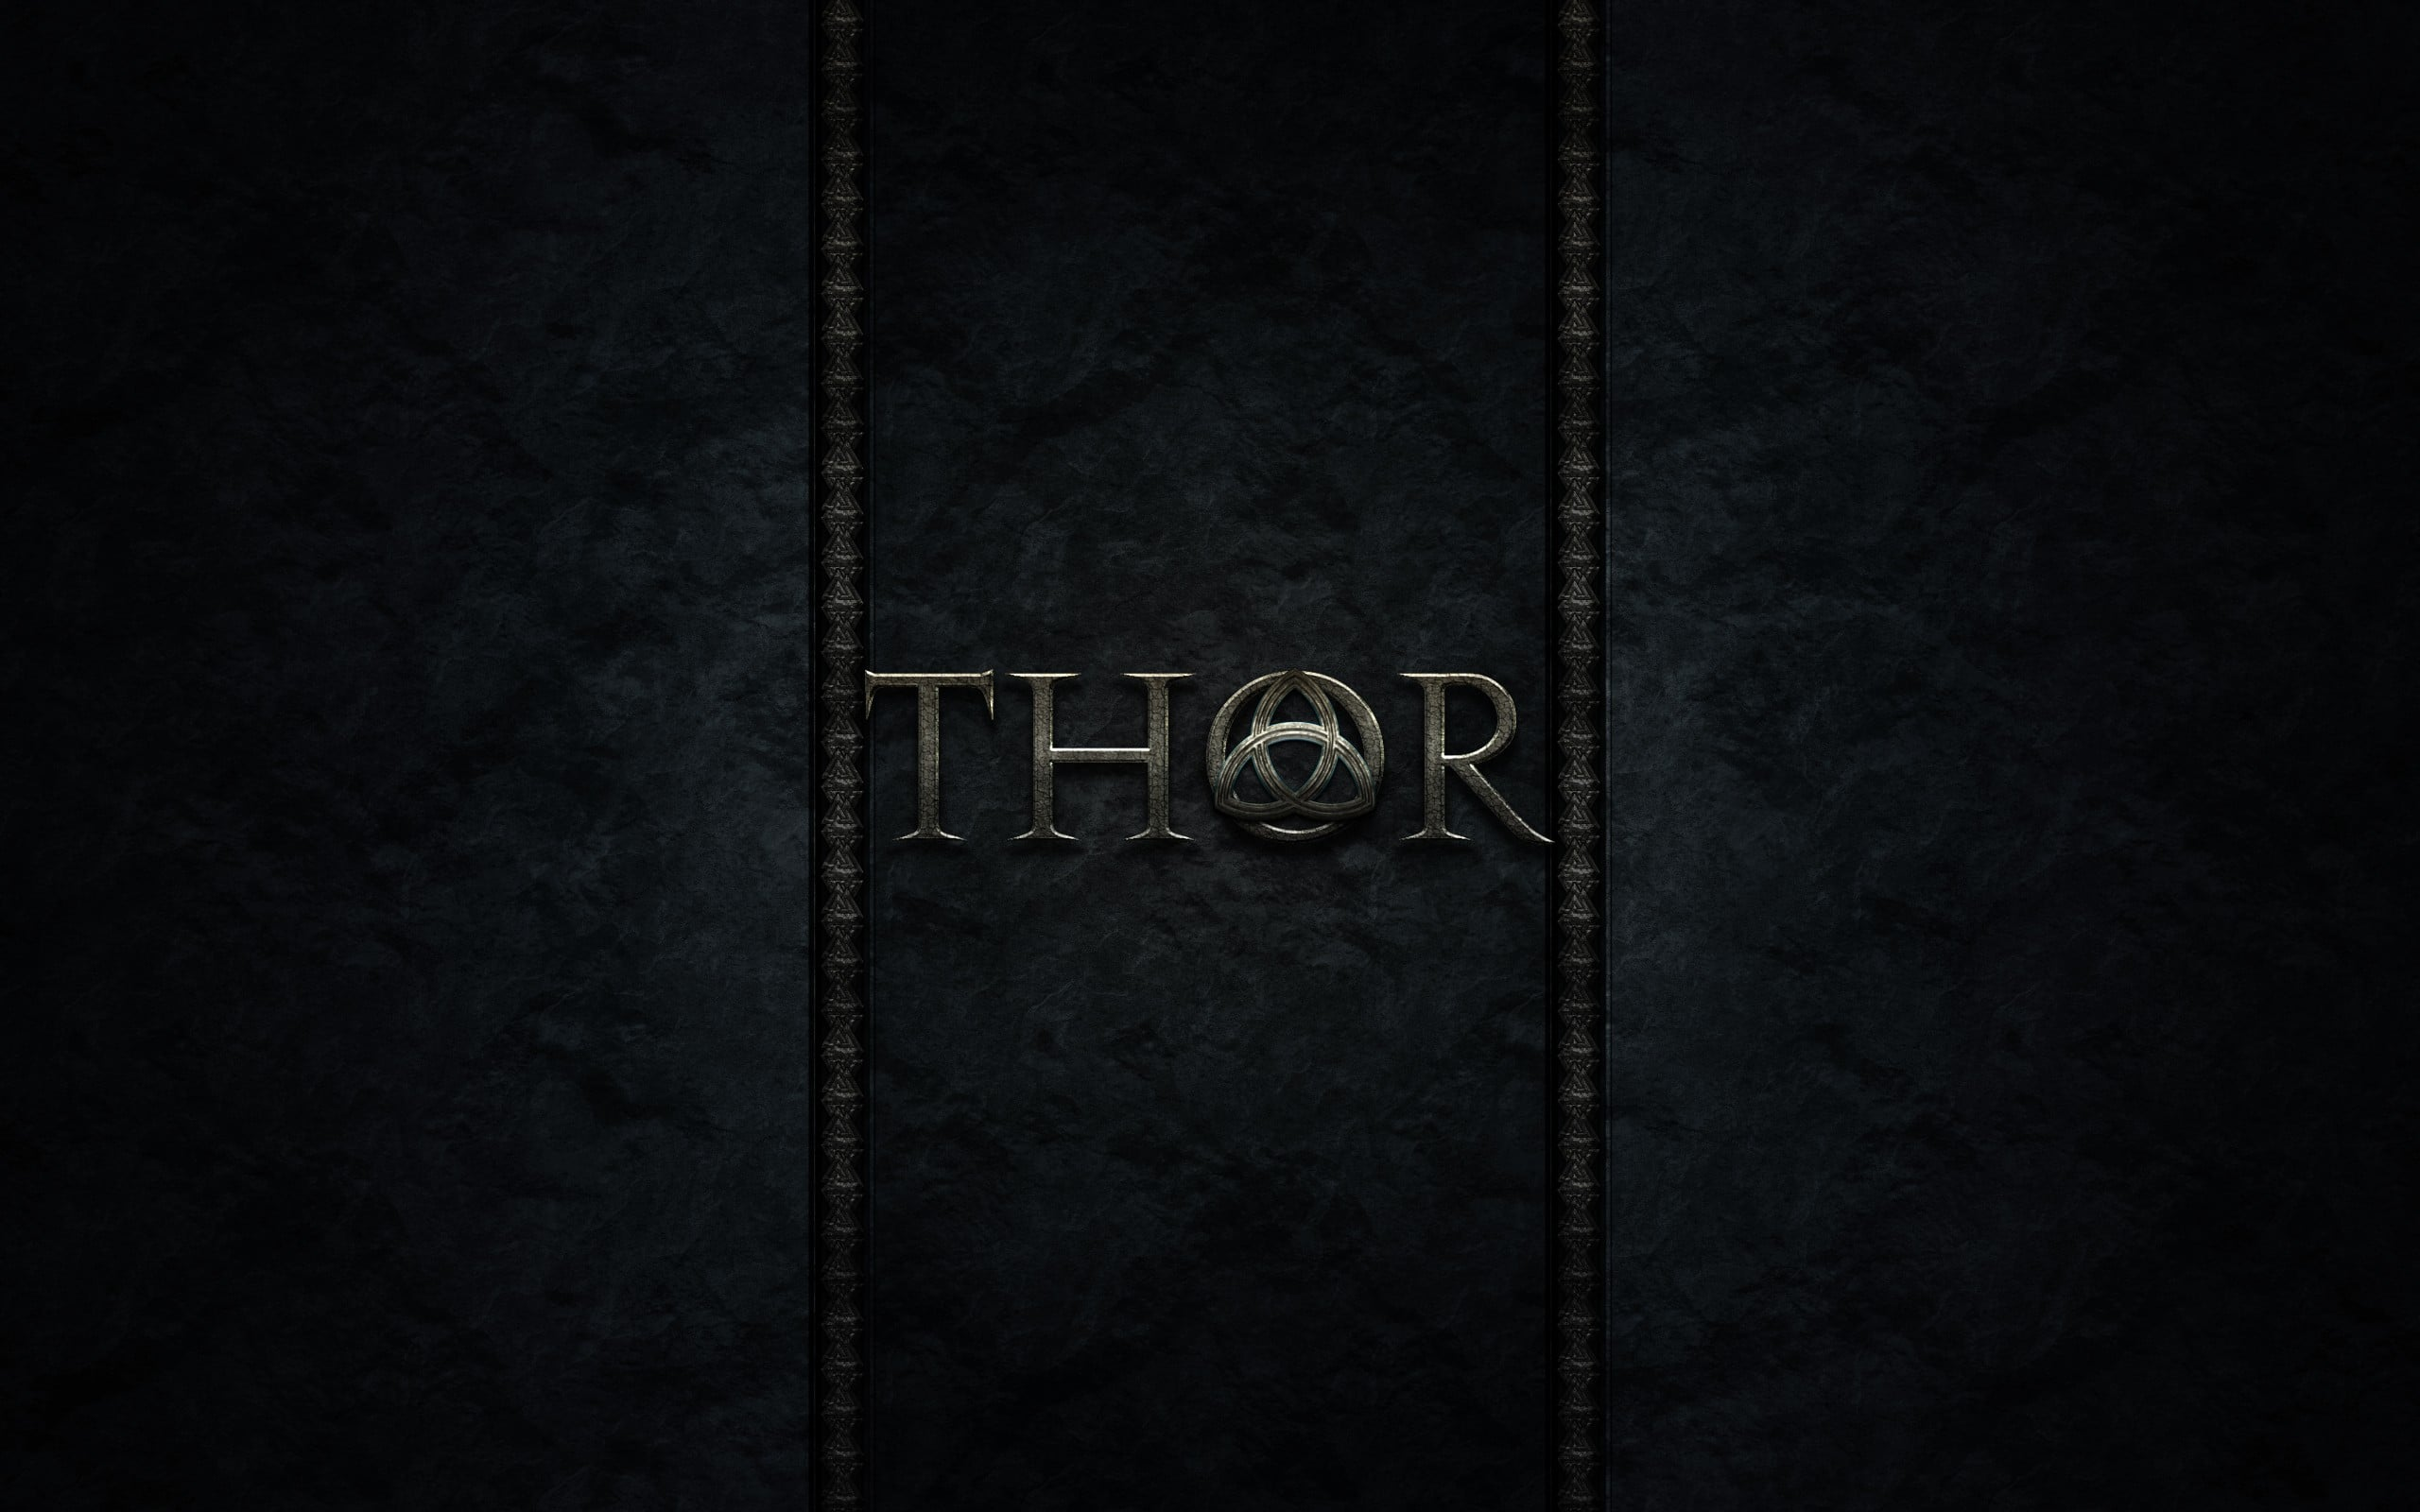 thor wallpaper 4k for pc